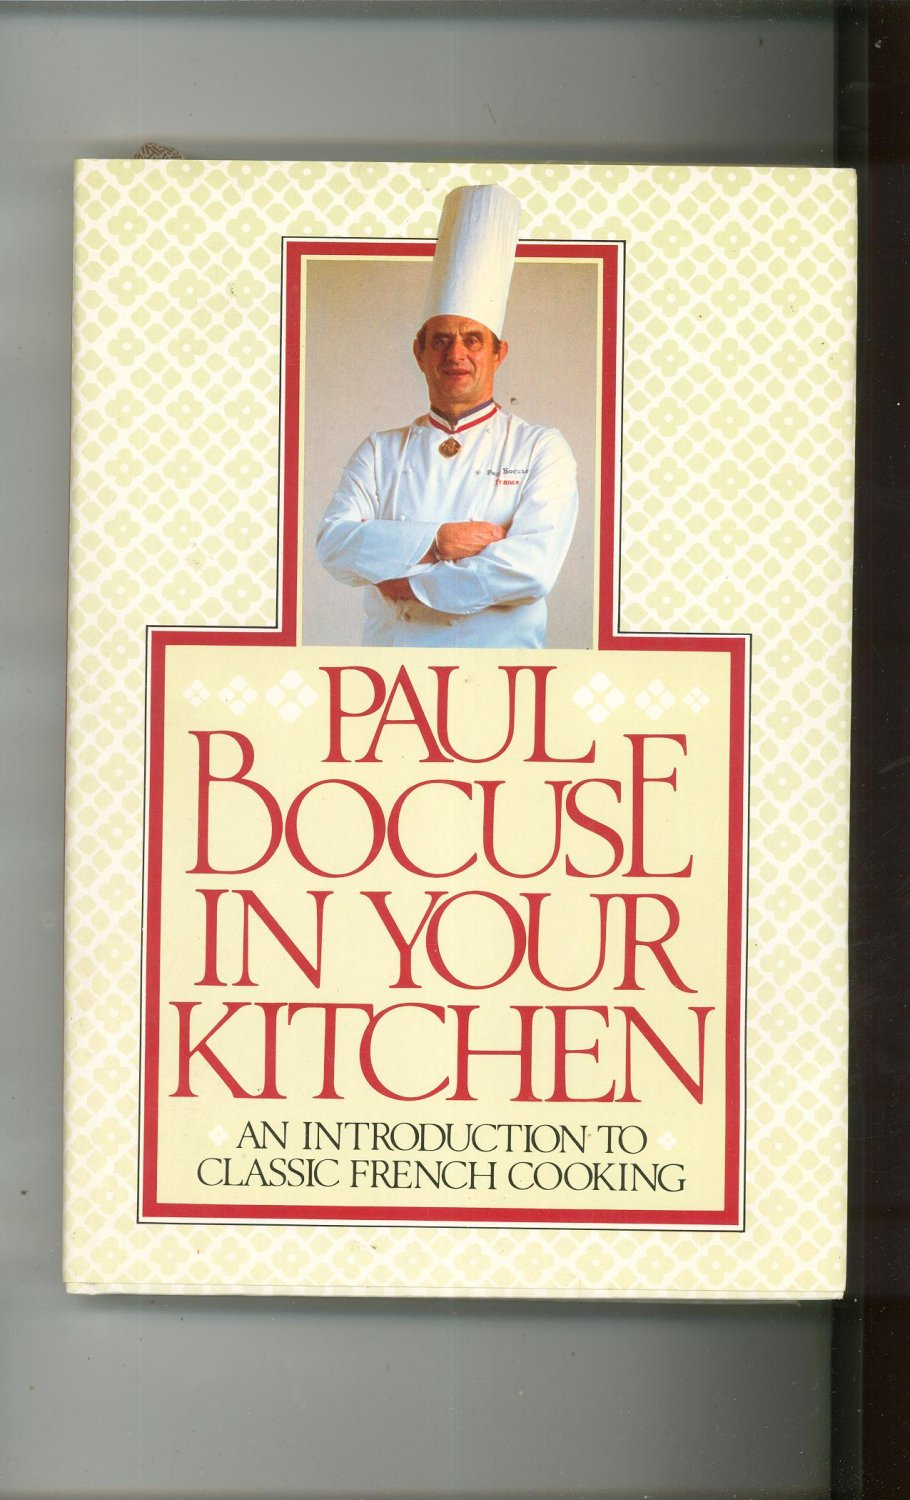 Paul Bocuse In Your Kitchen Cookbook Classic French Cooking Hard Cover First Edition 0394528530